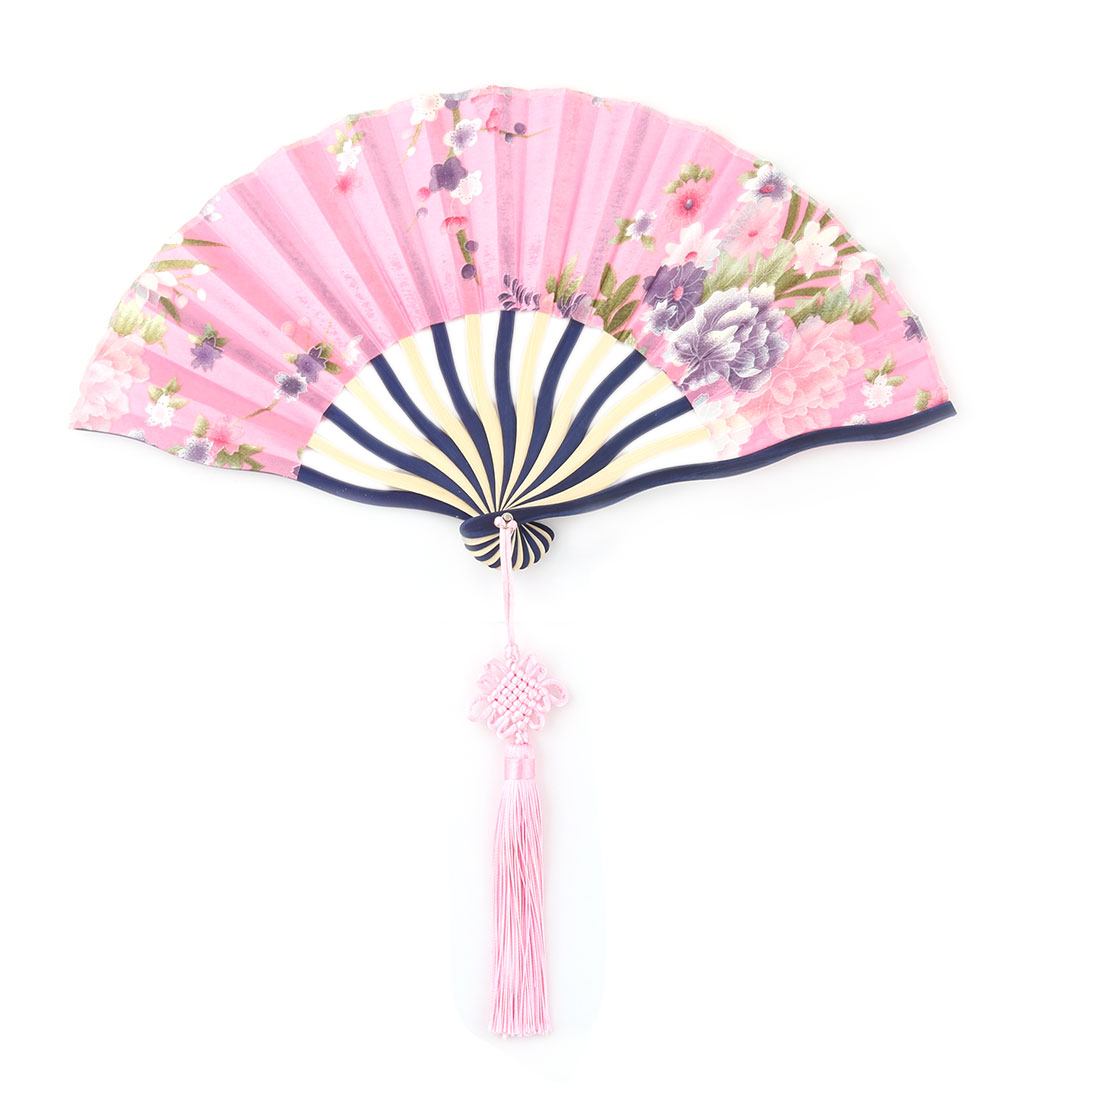 Women Flower Pattern Chinese Knot Tassel Hanging Decor Folding Hand Fan Pink